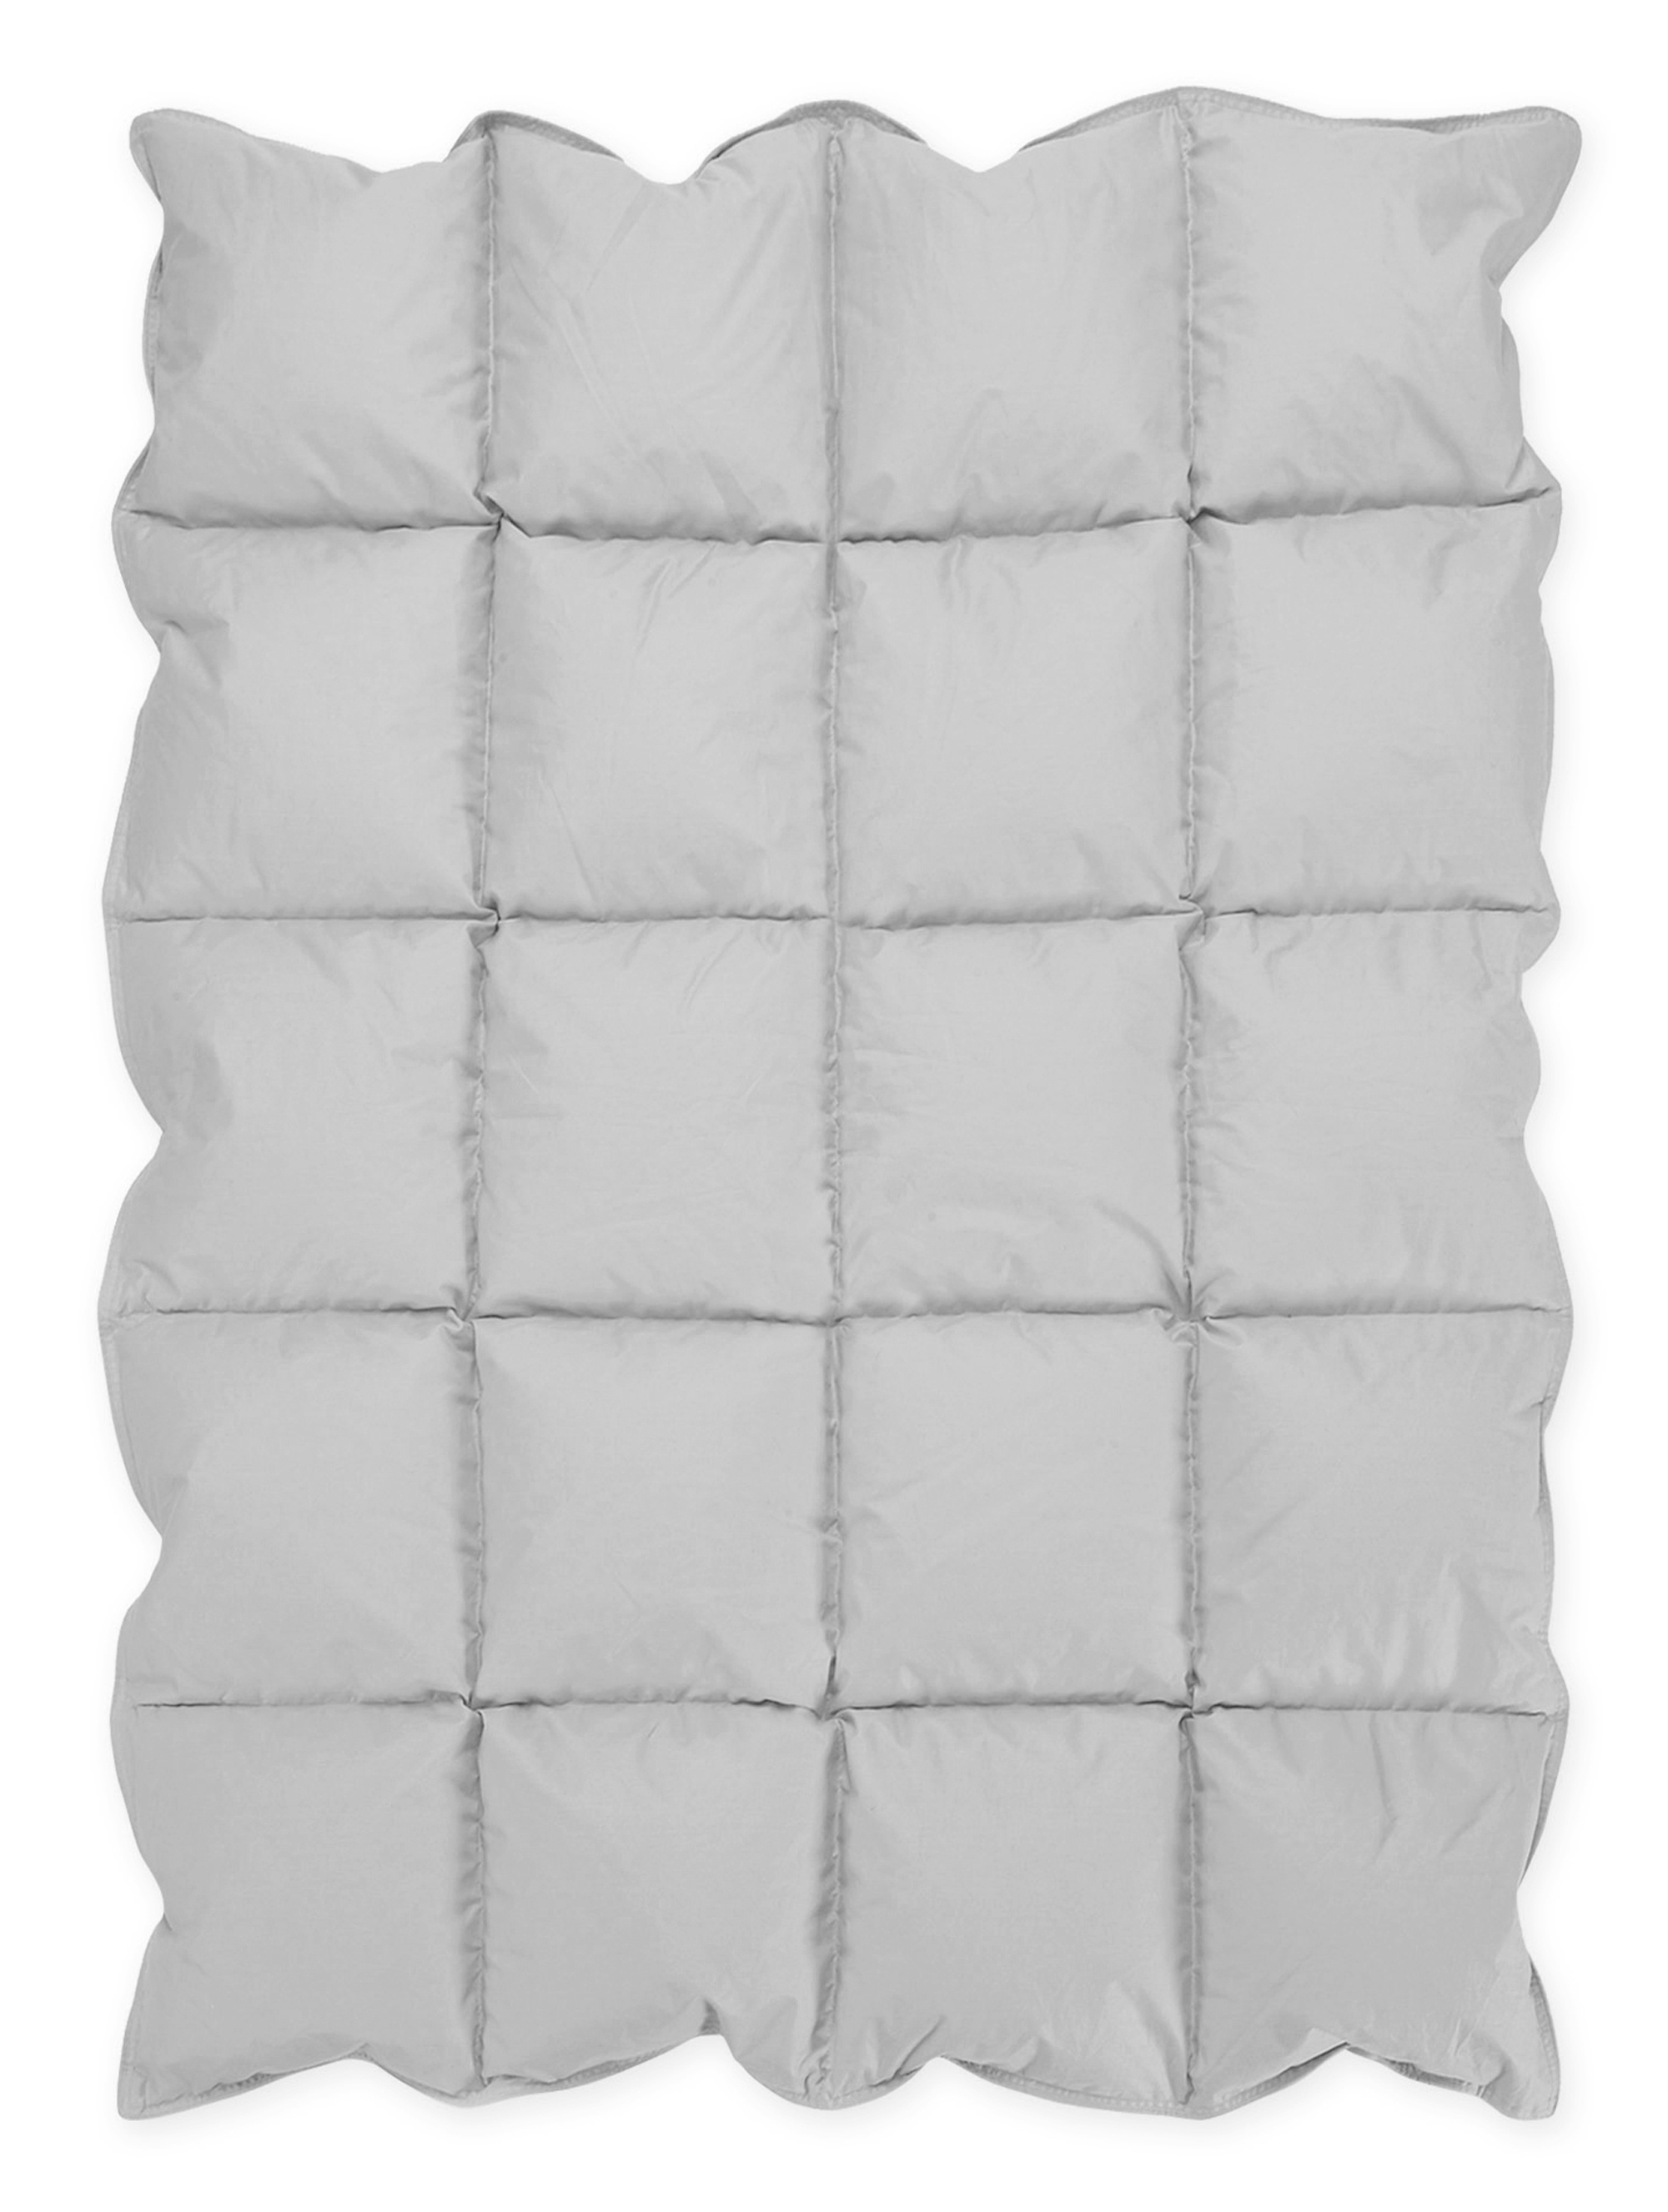 Crib alternatives for babies - Lull Your Baby To Sleep With This Sweet Jojo Designs Grey Soft And Fluffy Down Alternative Crib Comforter Blanket It Is Covered In A 233 Thread Count Down